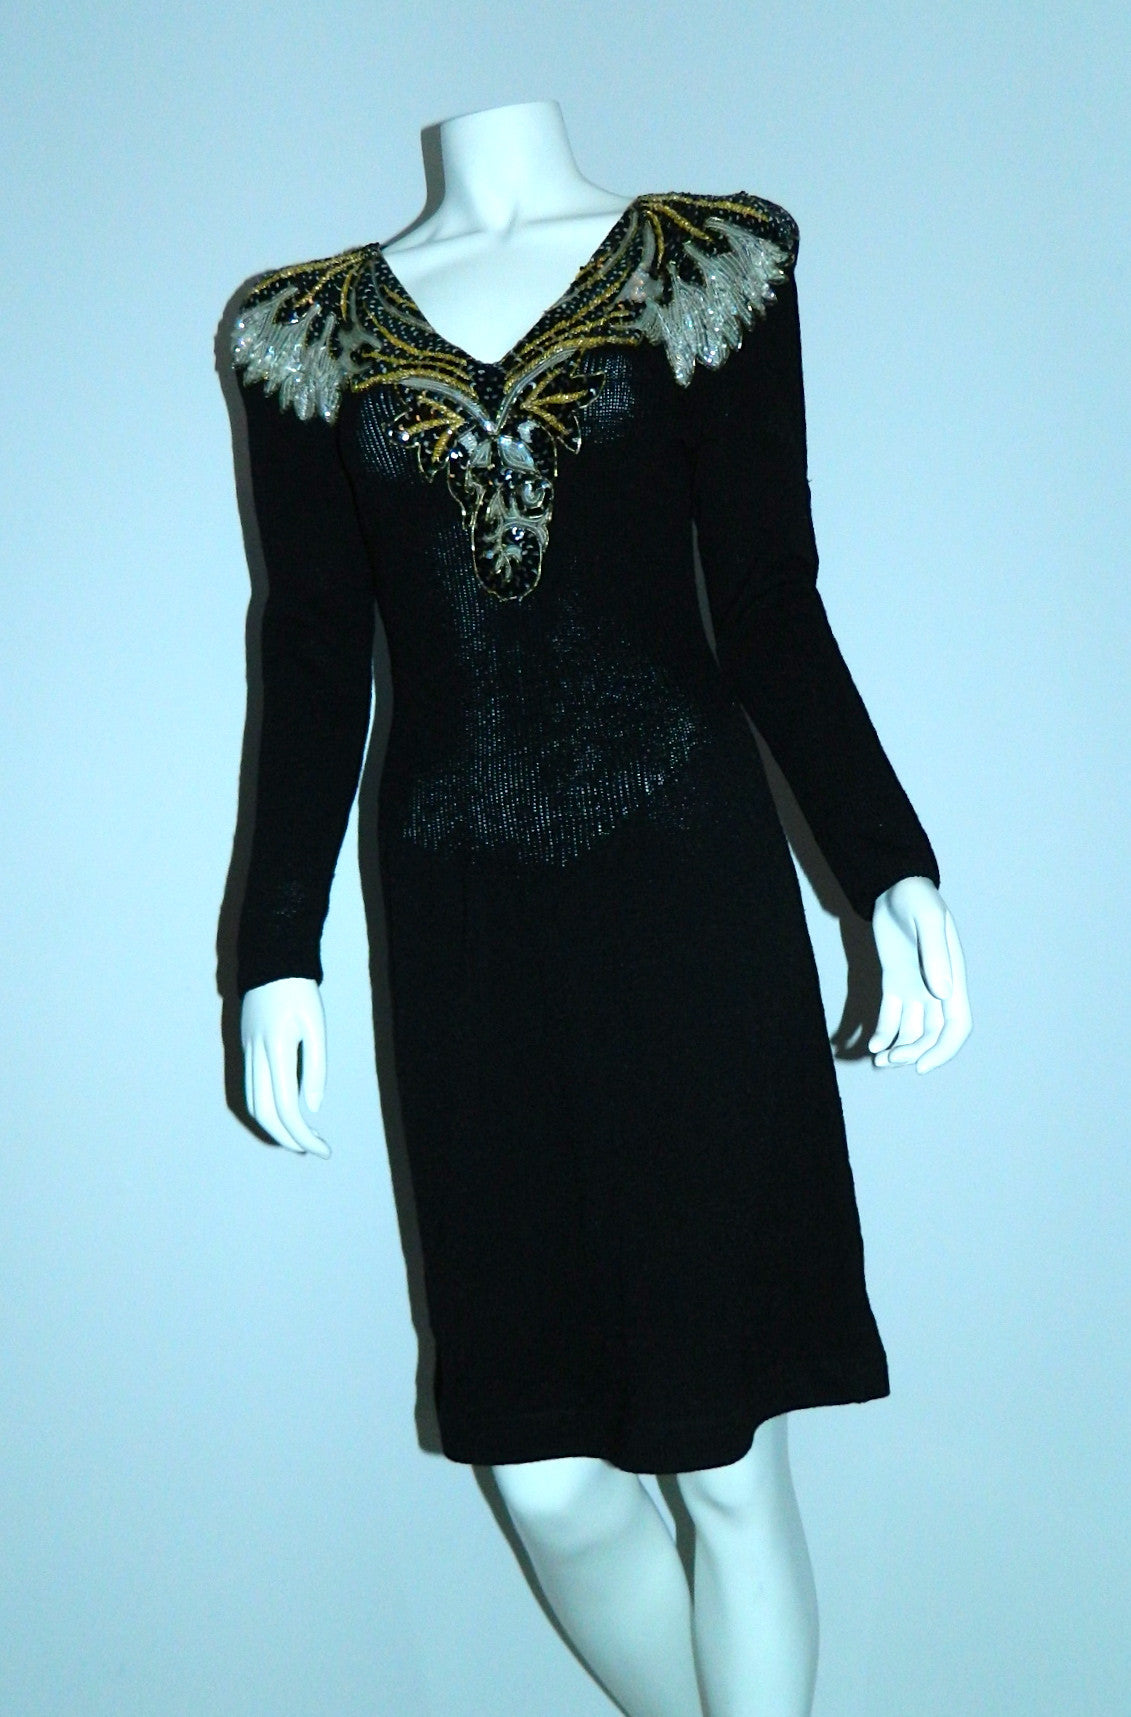 1980s GLAM black dress vintage Pat Sandler Wellmore sequin front knit dress